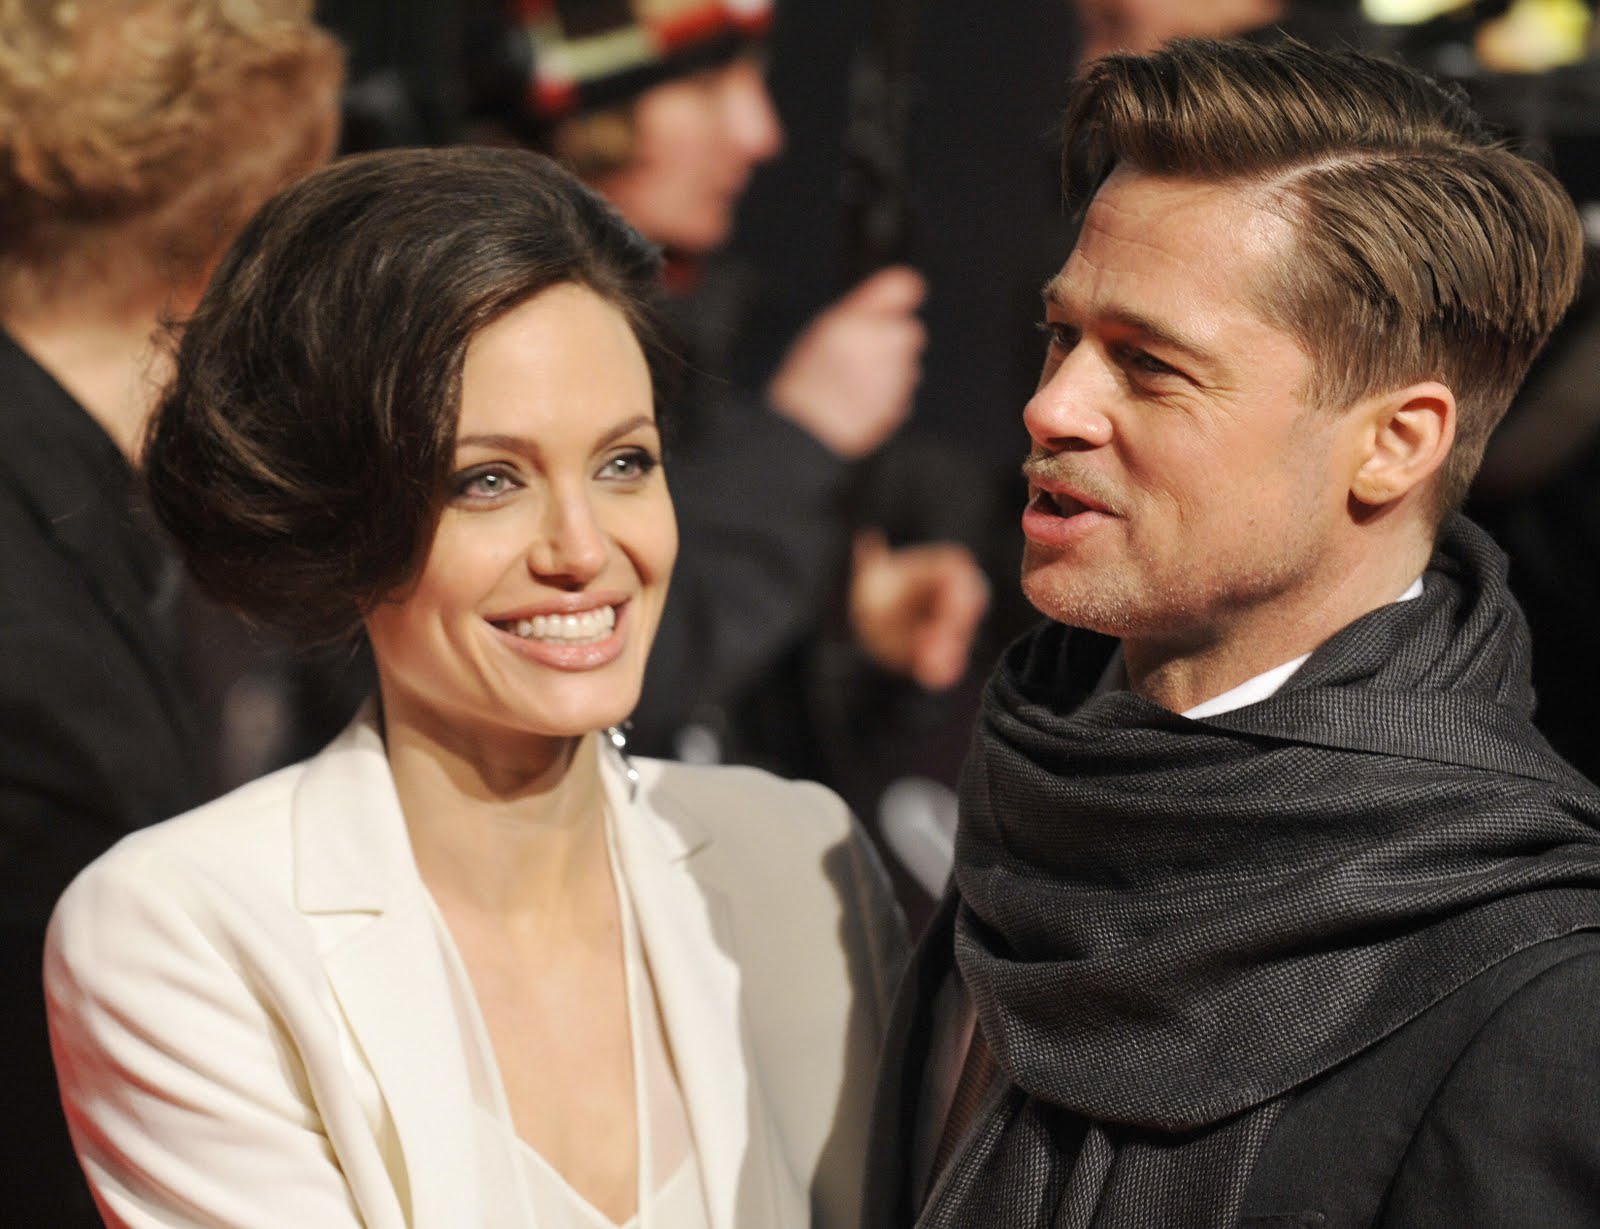 http://1.bp.blogspot.com/_k1IfXjxF5g0/TAGWUTV00iI/AAAAAAAAHsI/ZDheiOQu_54/s1600/Angelina-Jolie-at-The-Curious-Case-of-Benjamin-Button-premiere-in-Berlin.jpg